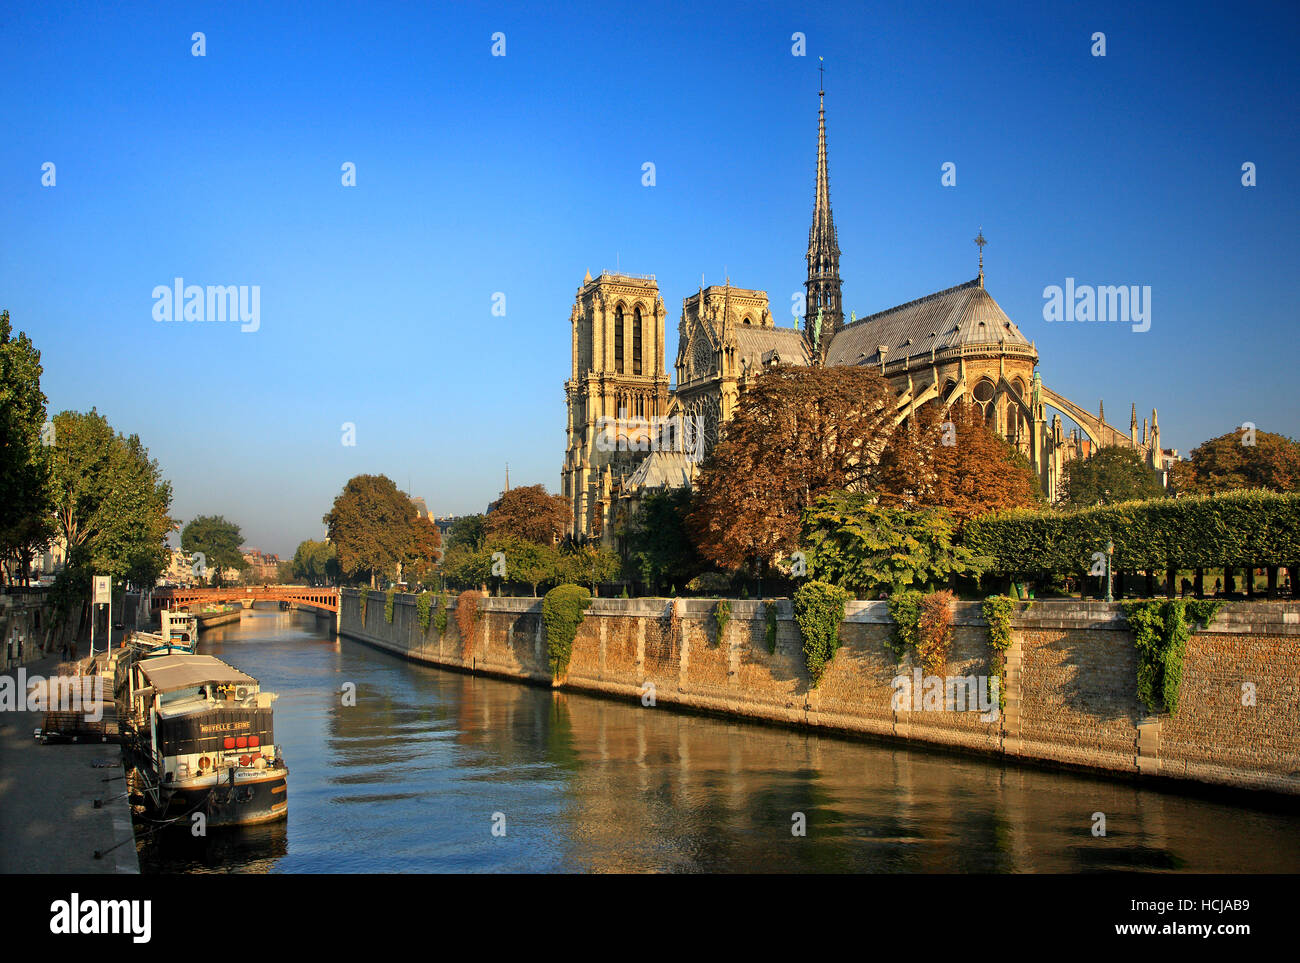 The Notre Dame Cathedral on  Île de la Cité, one of the islands in Seine river, Paris, France. - Stock Image